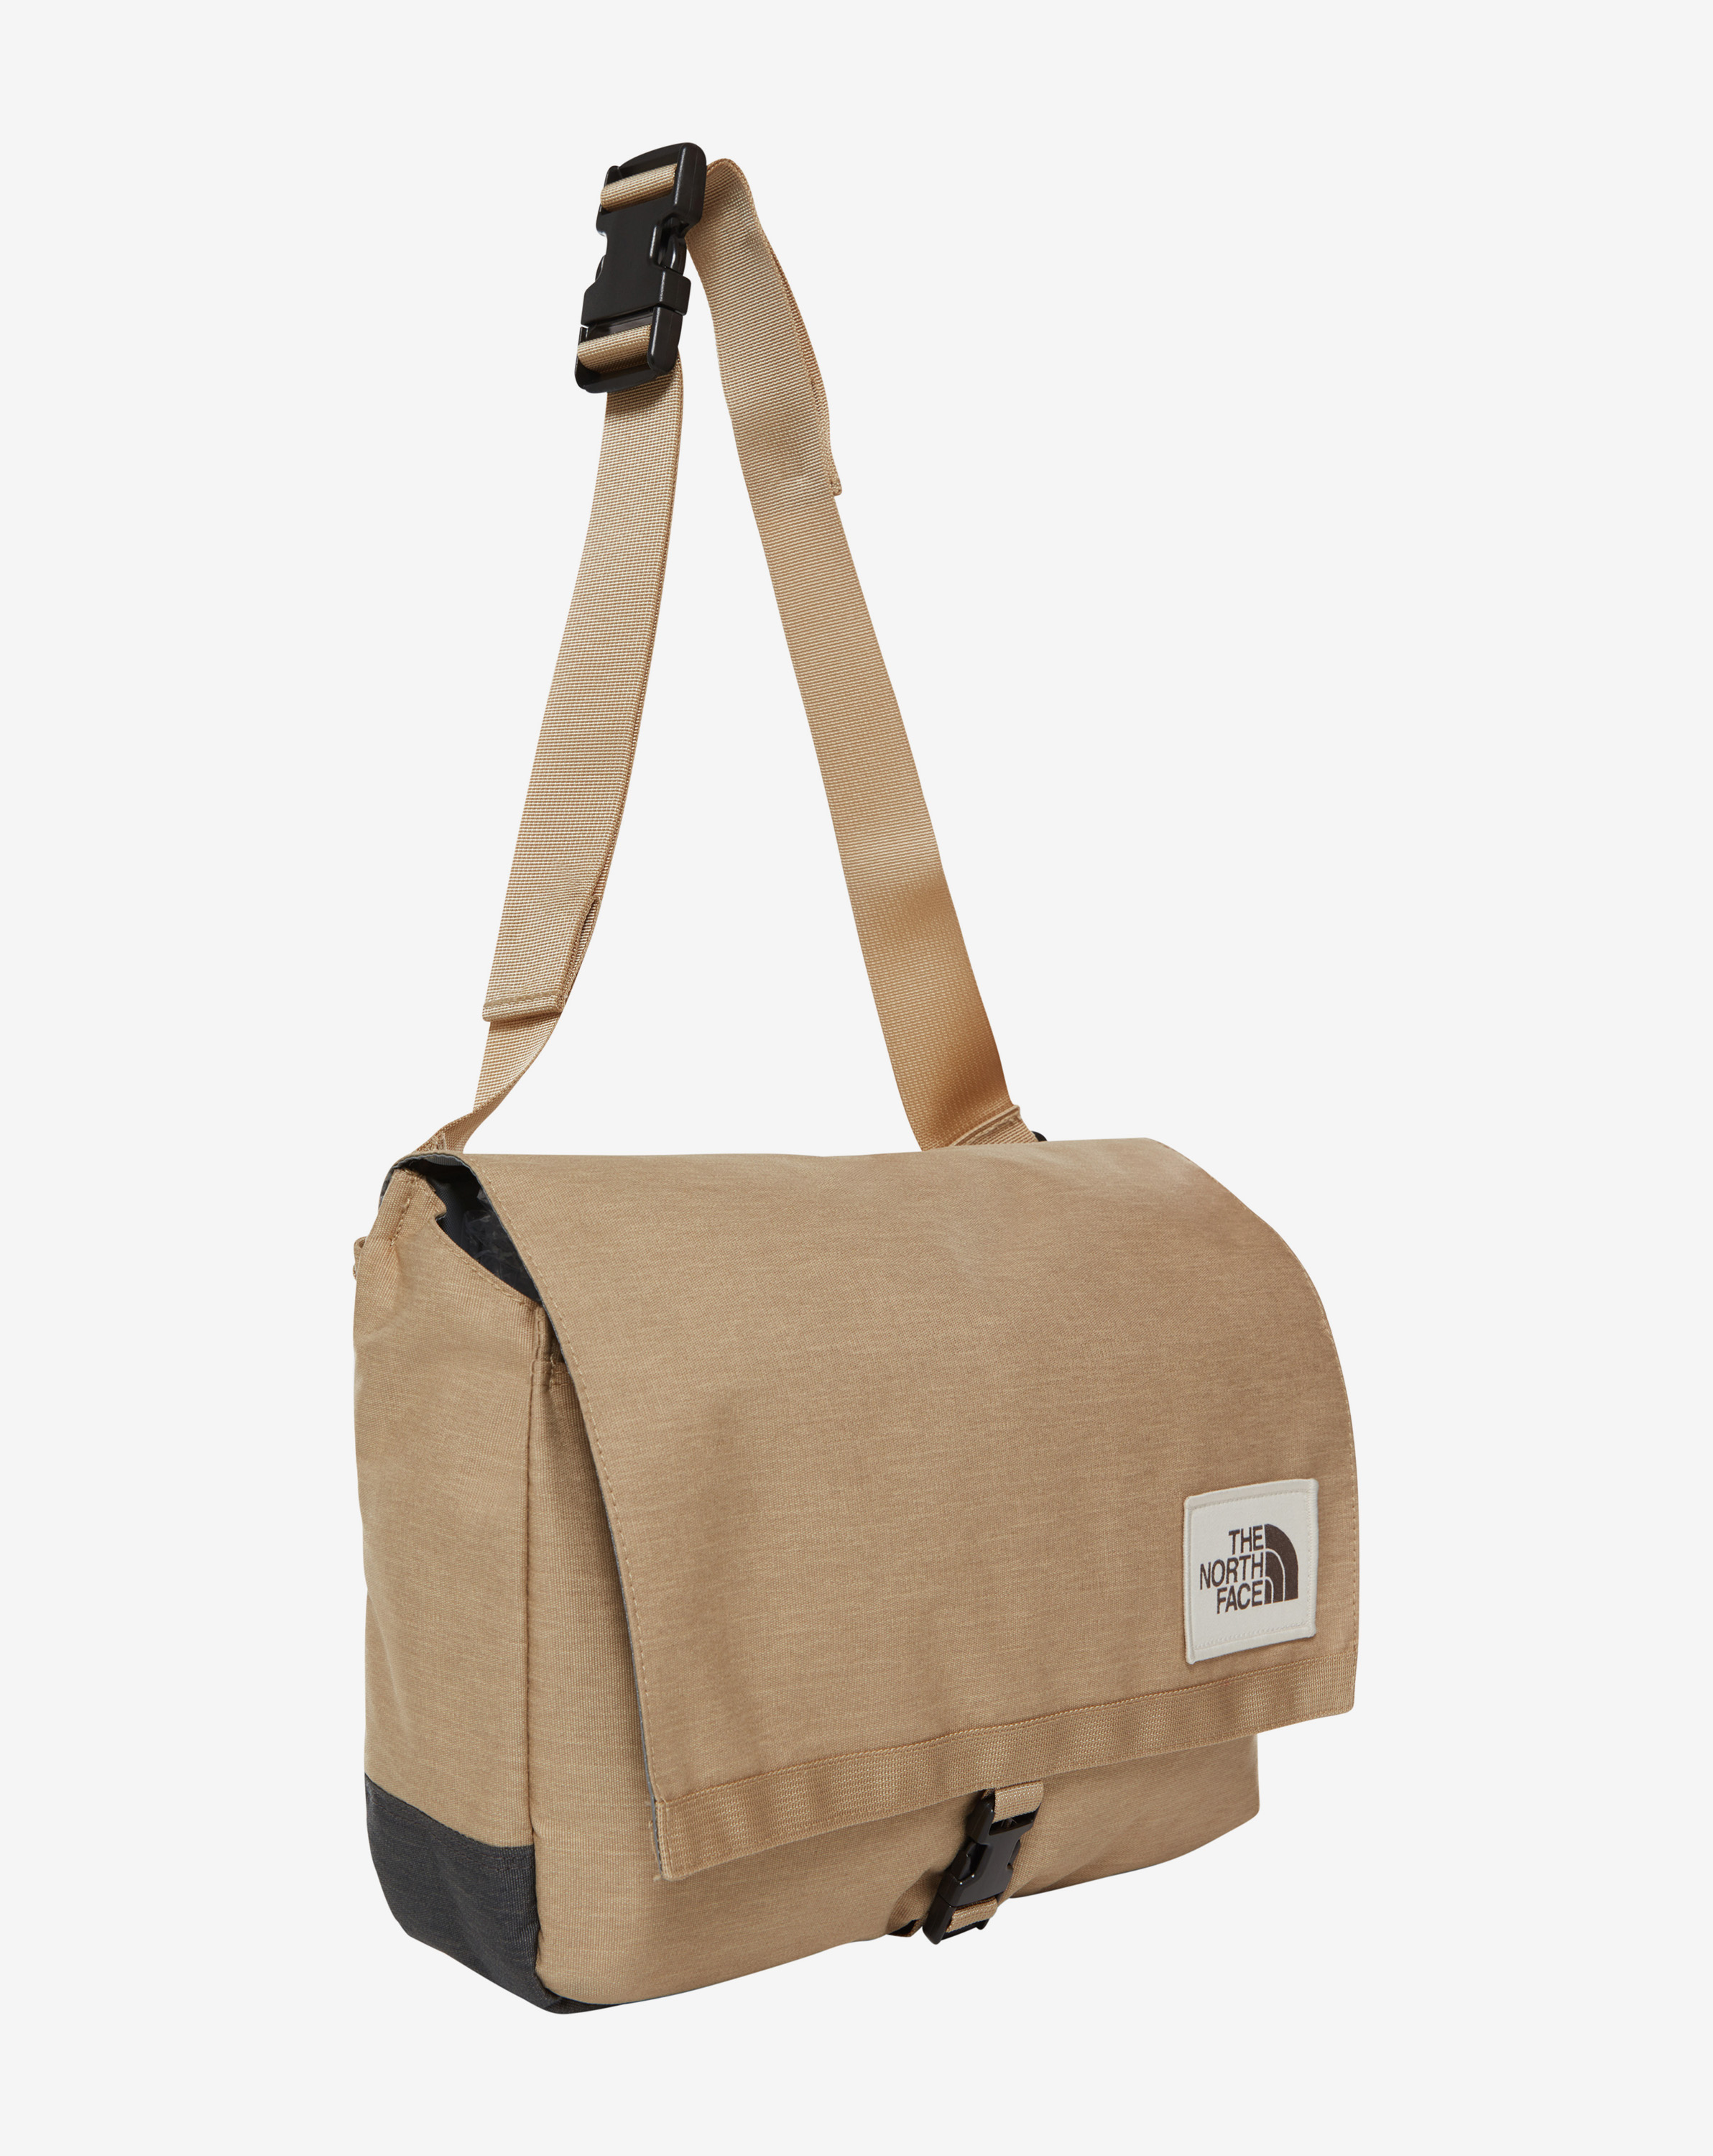 BERKELEY SATCHEL